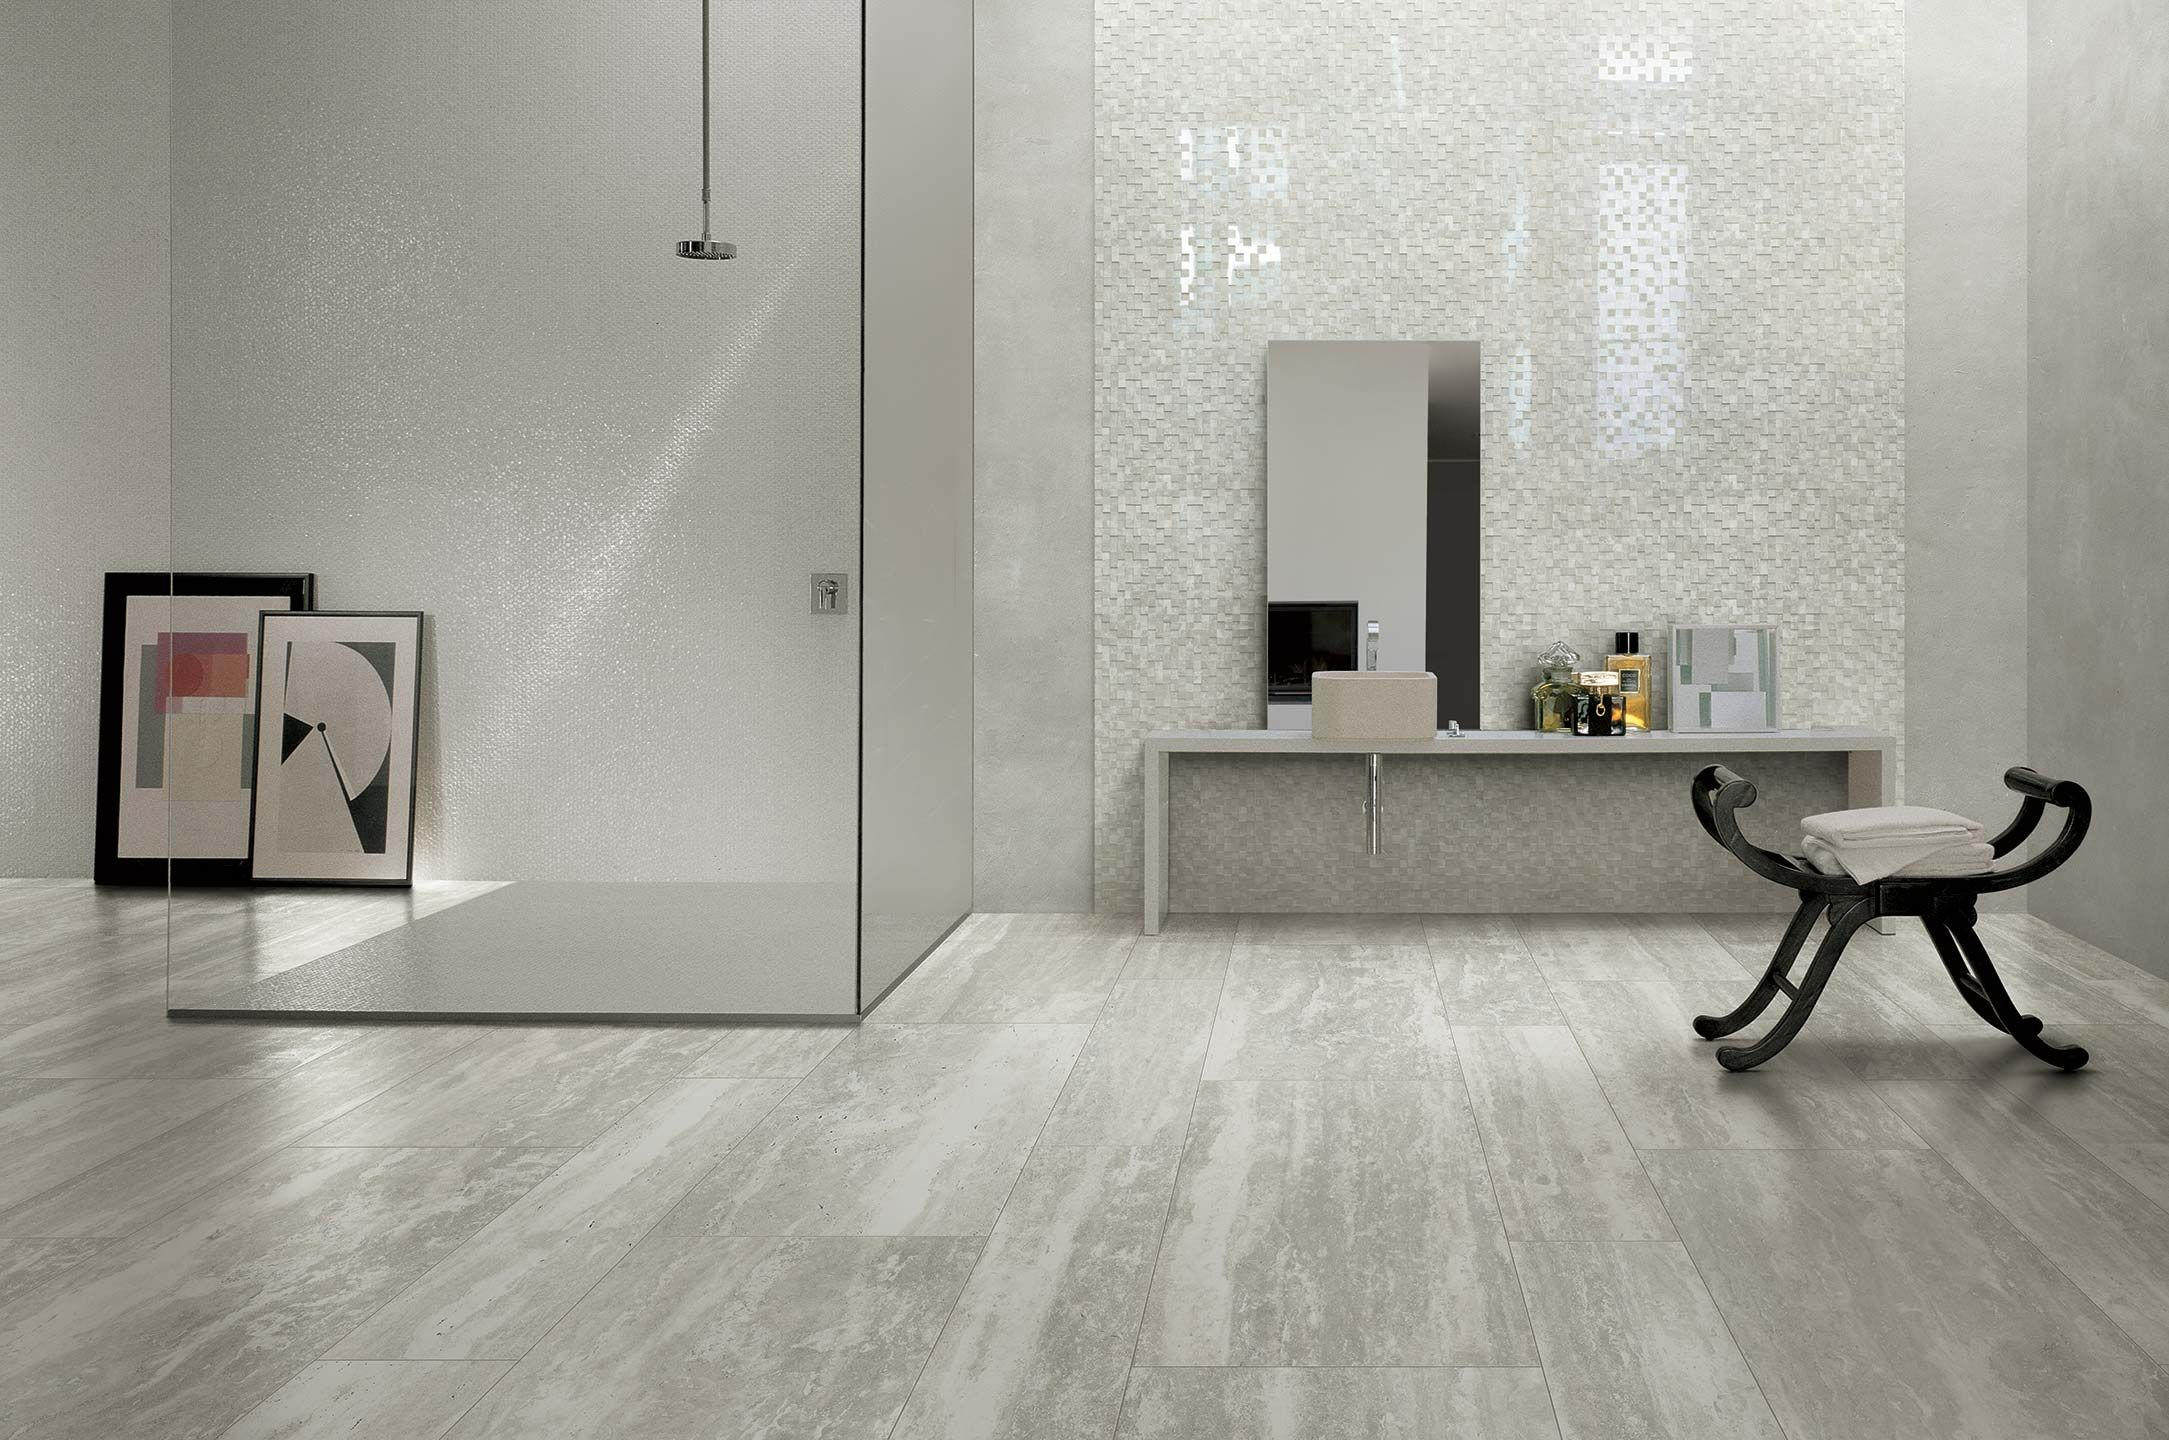 A Porcelain Collection Ispired By The Travertino Natural Stone I